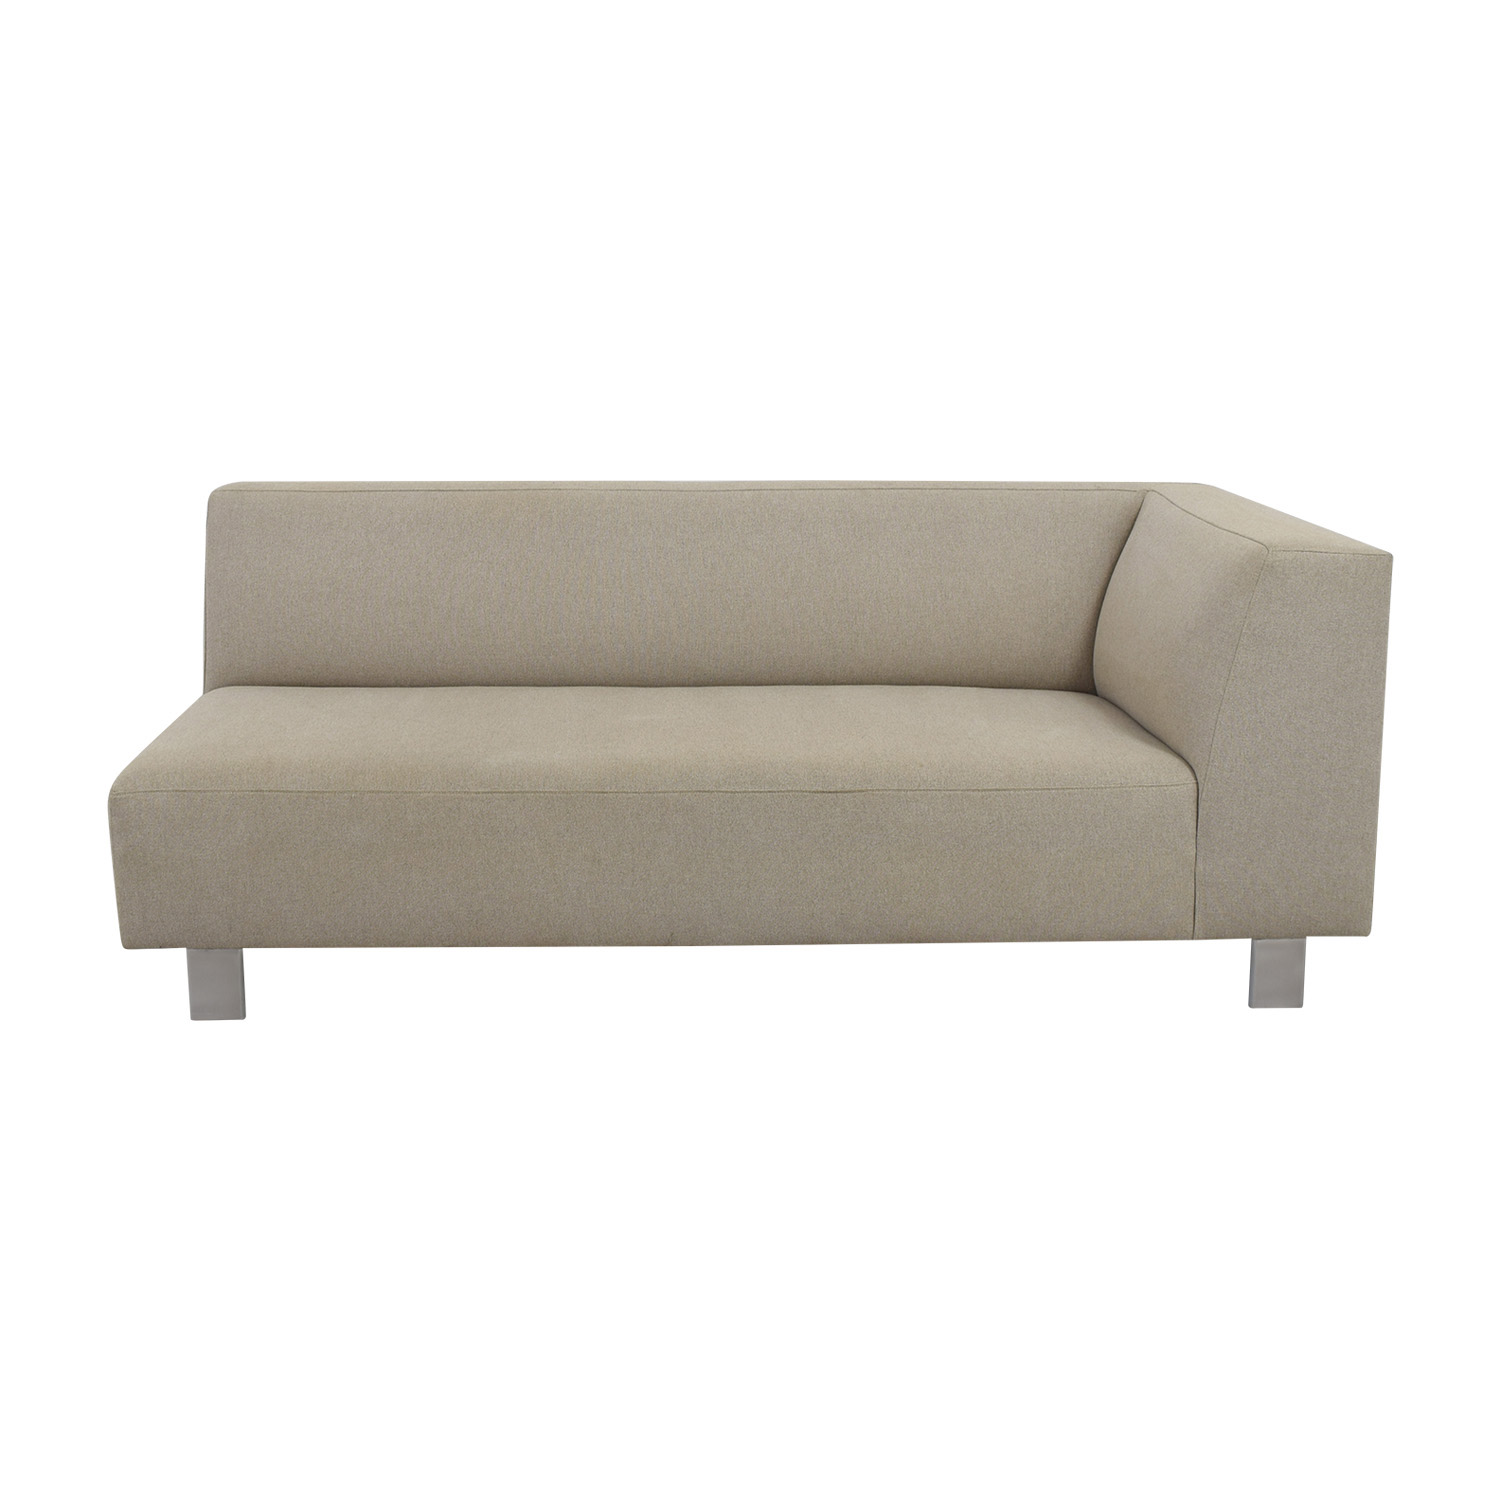 room and board chelsea sofa 3 seater wooden size chaises used for sale